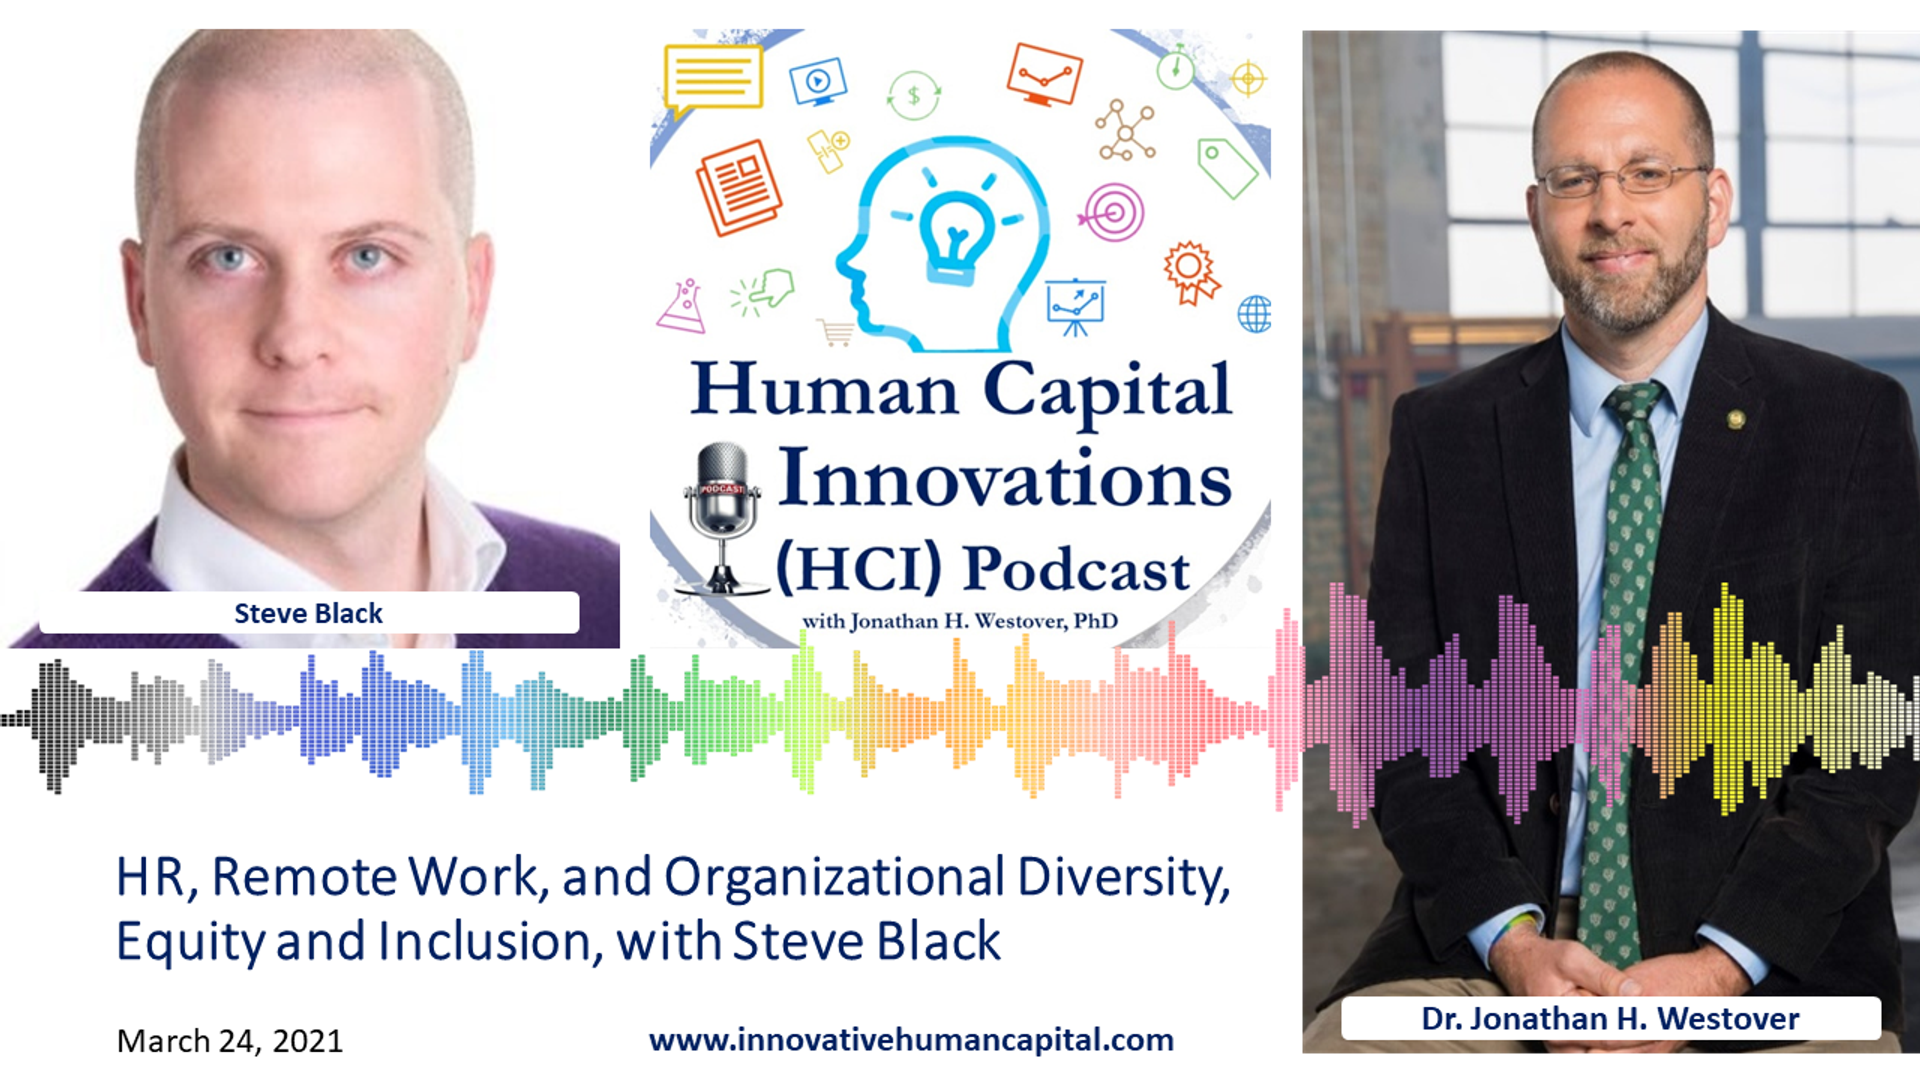 HR, Remote Work, and Organizational Diversity, Equity and Inclusion